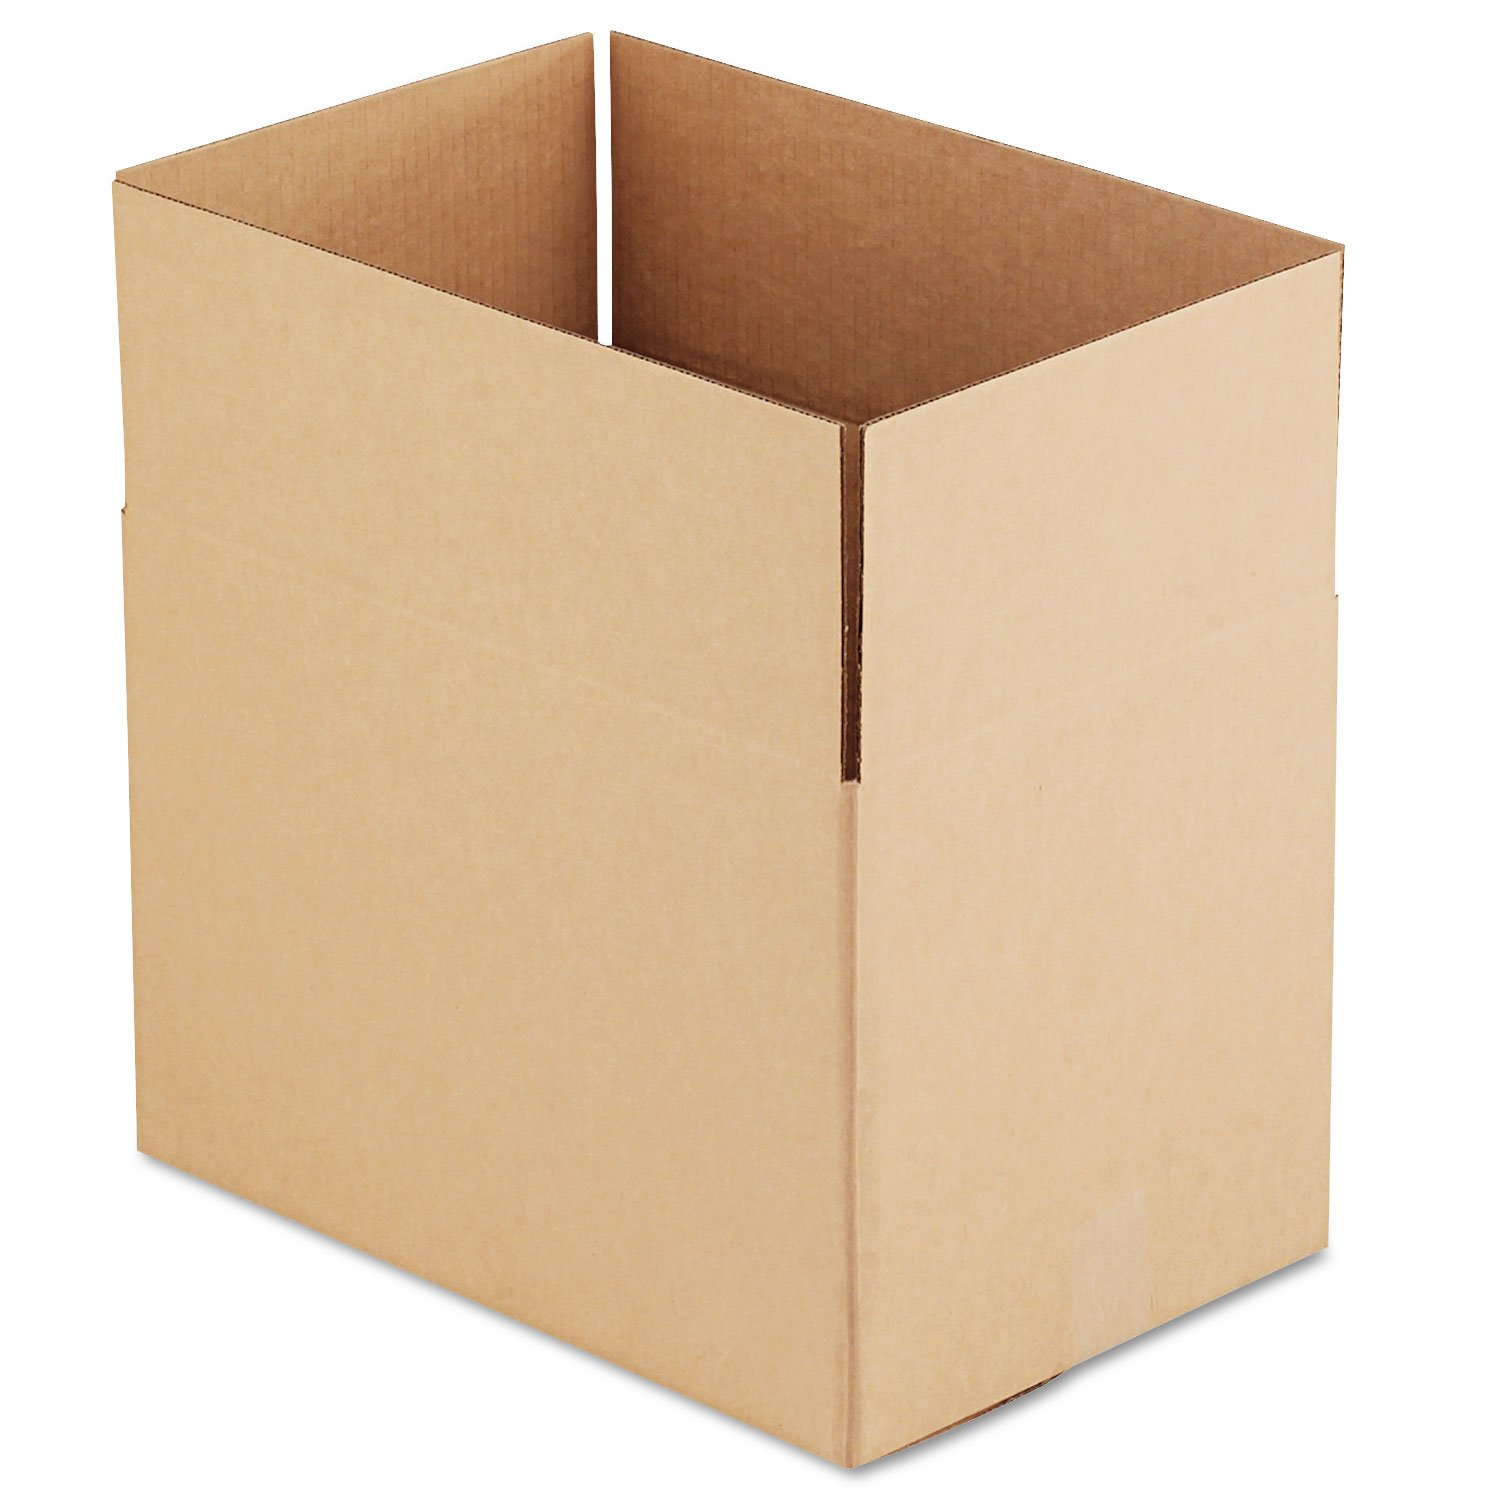 General Supply 181212 Brown Corrugated - Fixed-Depth Shipping Boxes, 18l x 12w x 12h, 25/Bundle